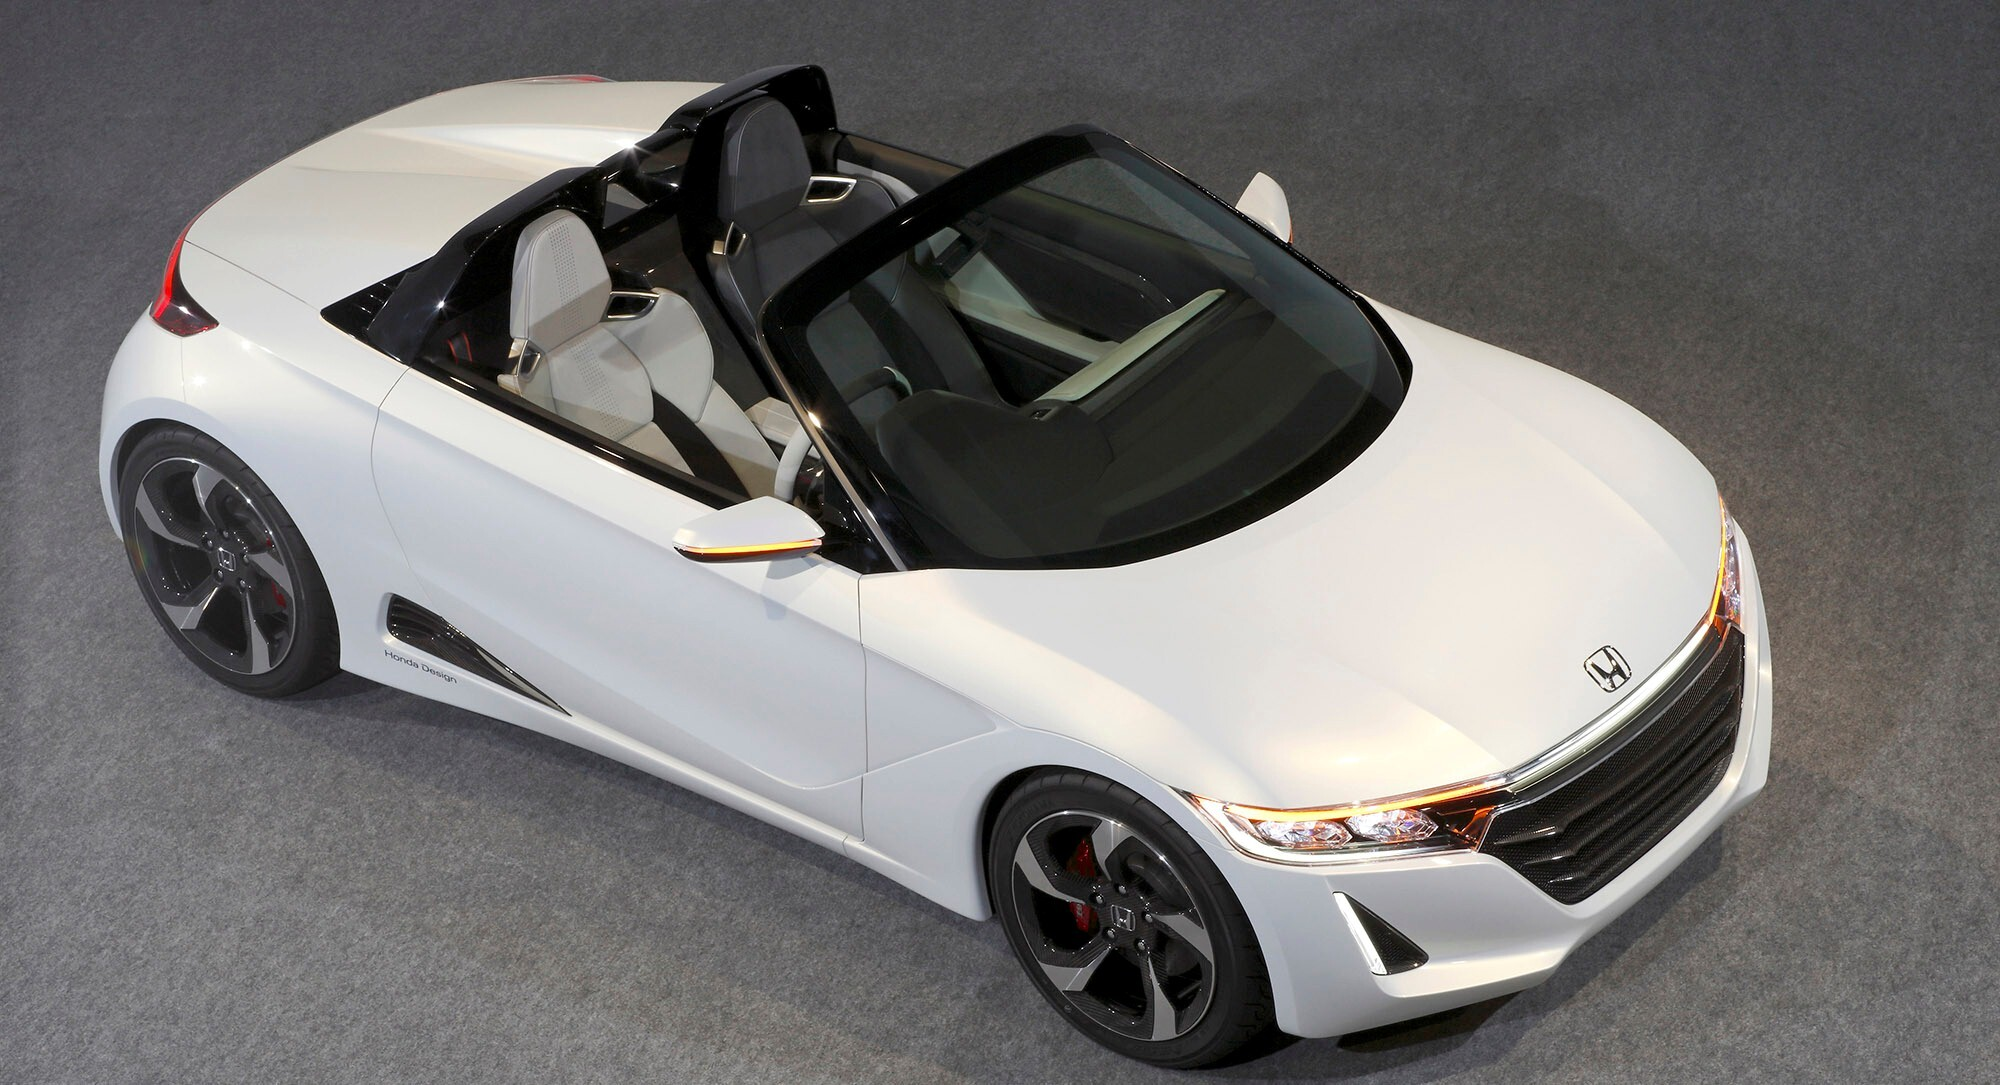 New 2015 Honda S660 Convertible Two Seater White Concept Car HD